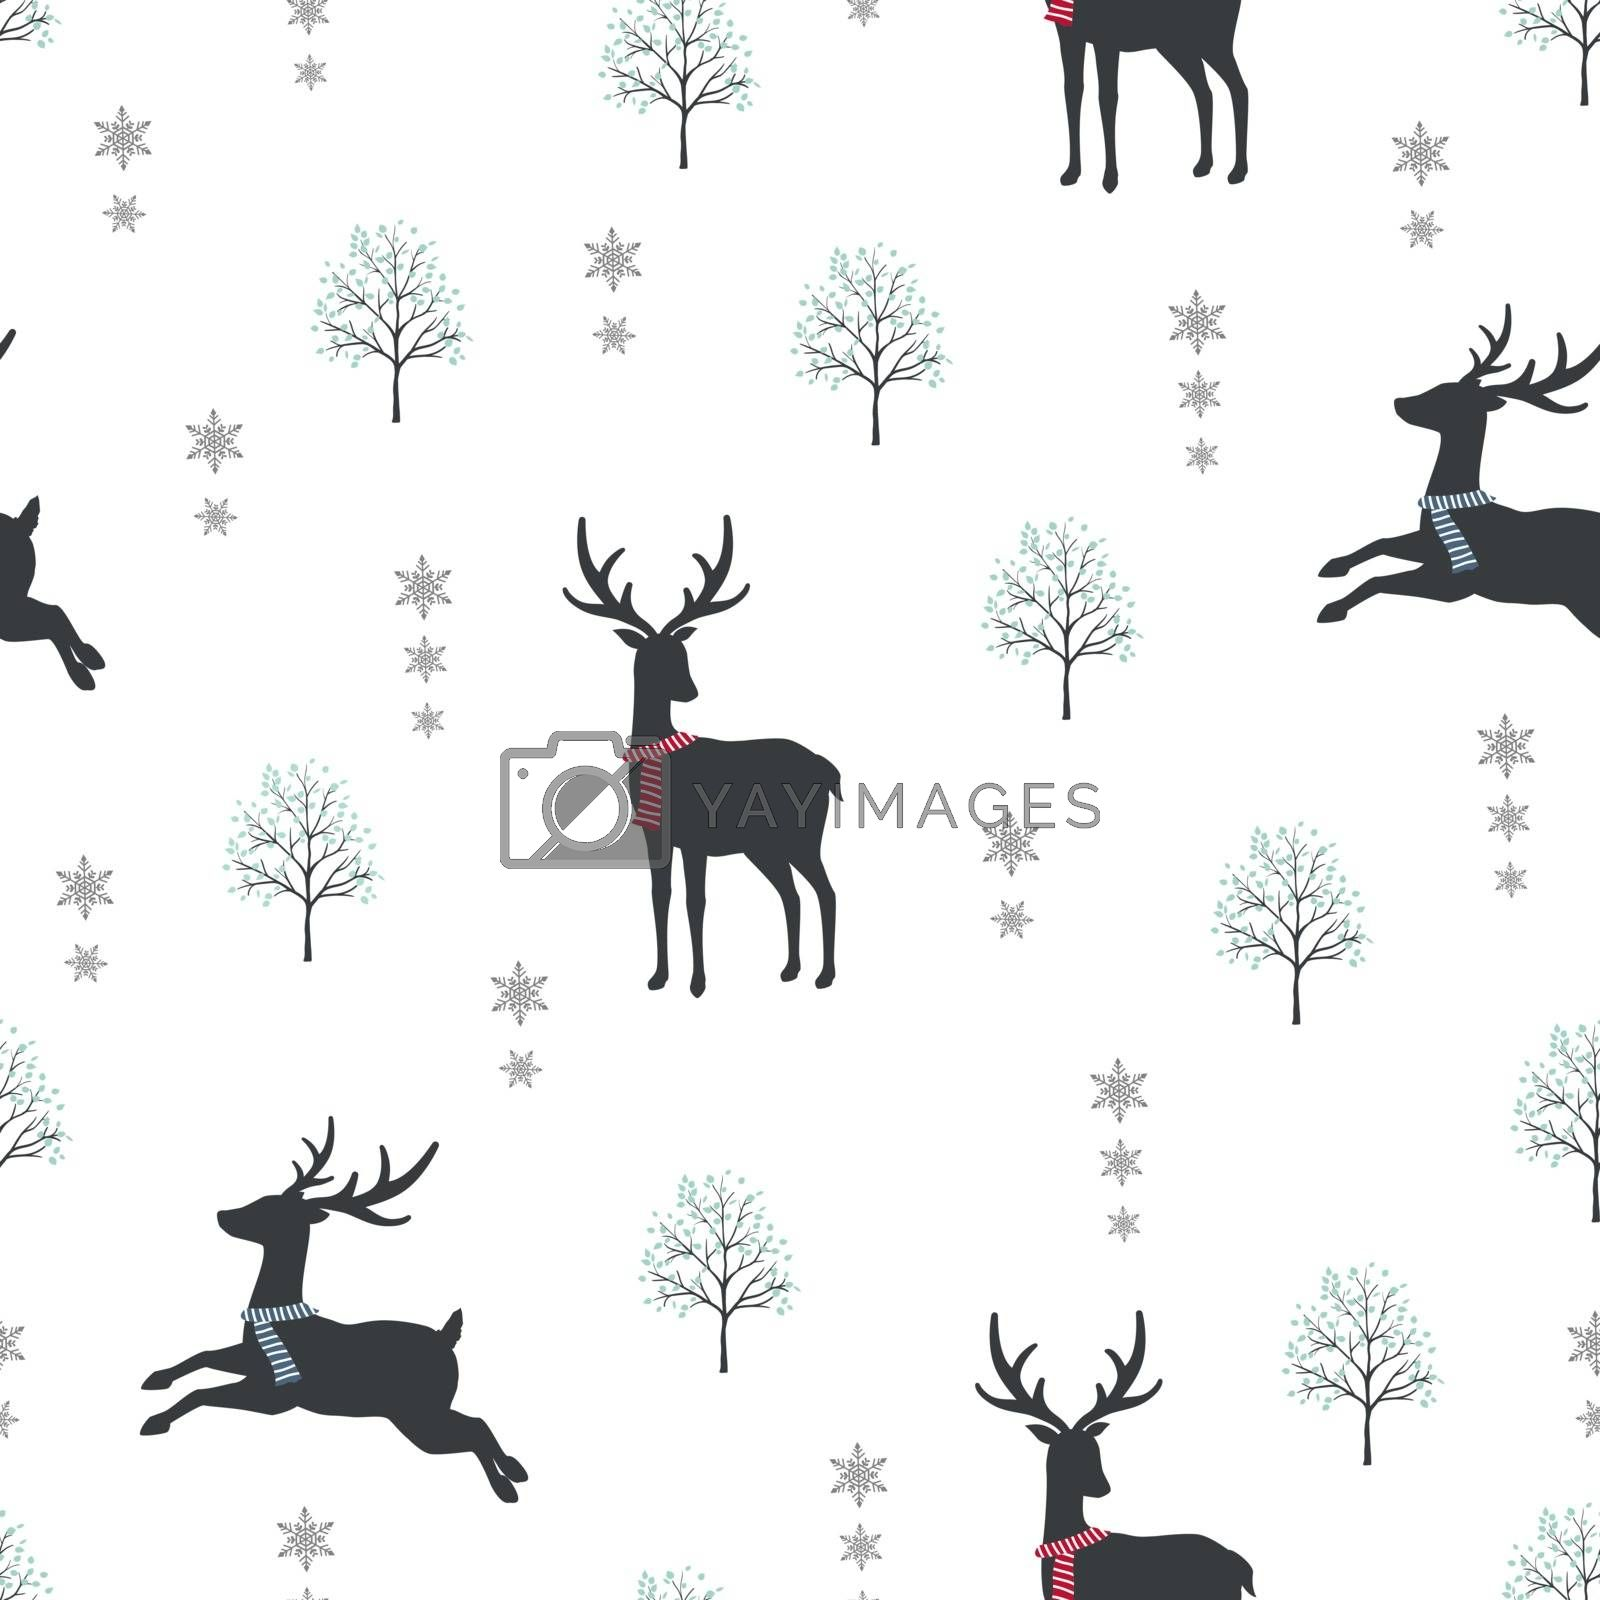 Cute deer on winter snow seamless pattern,for decorative Christmas holiday,wrapping paper,baby clothes,textile or all print,vector illustration